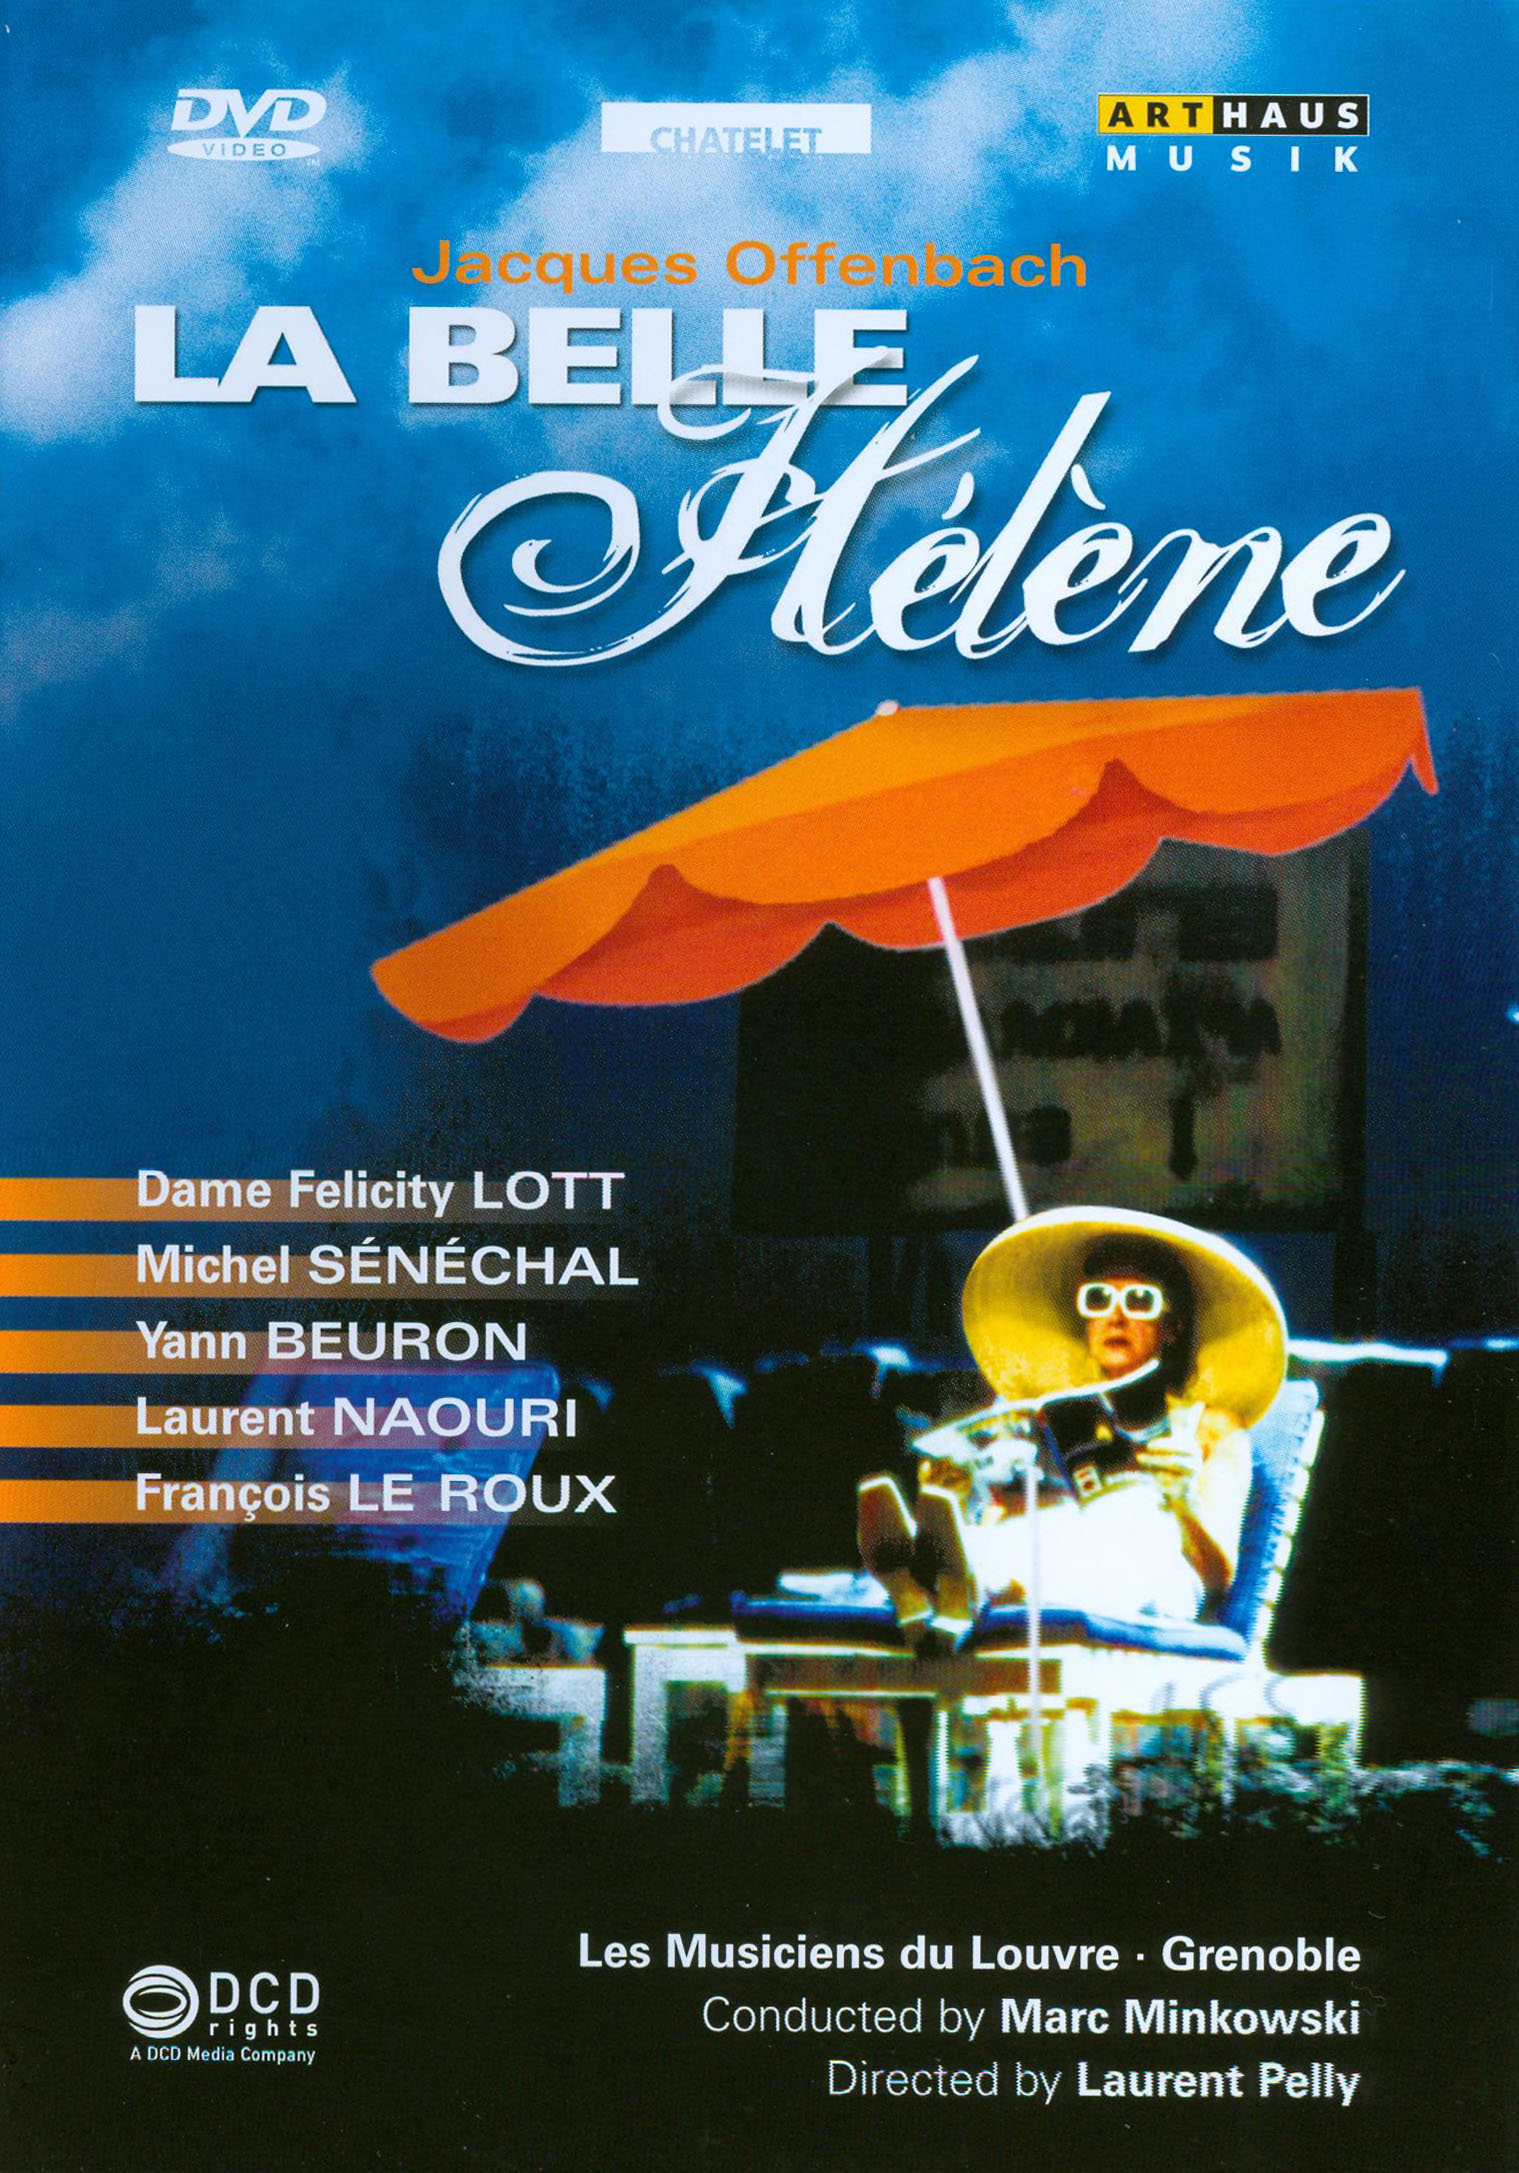 La Belle Hélène (Theatre Musical de Paris)